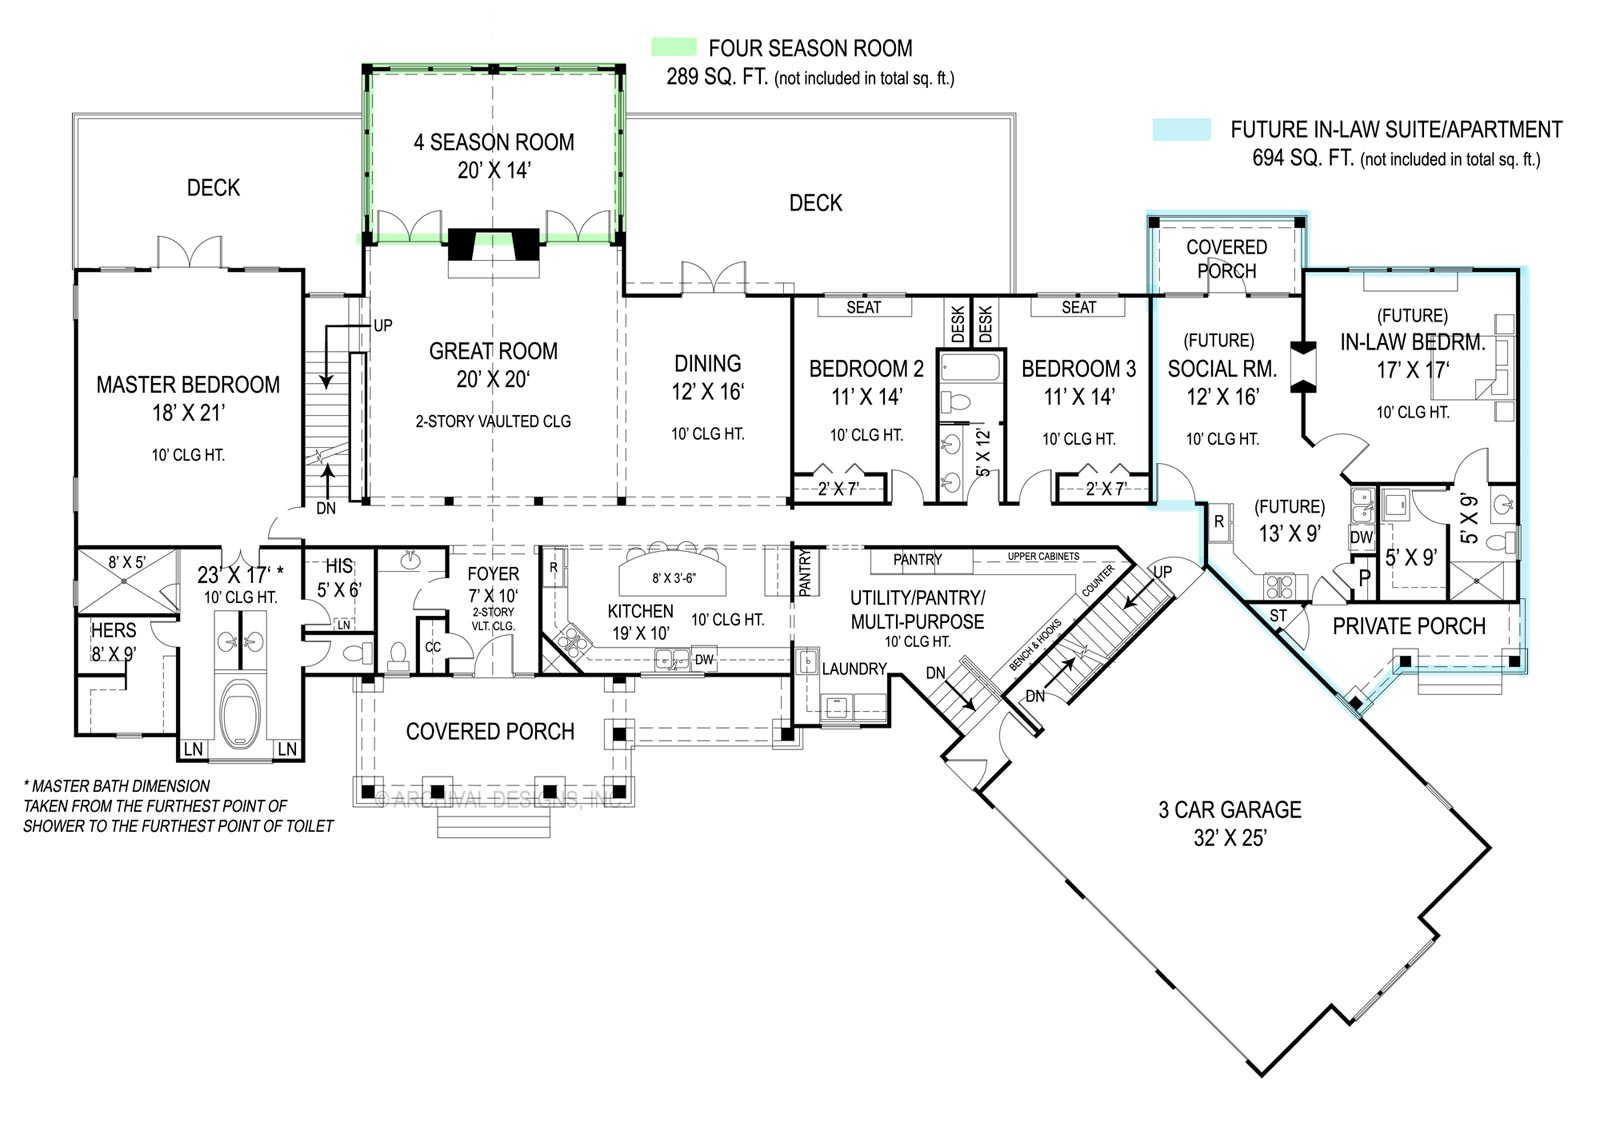 Main level floor plan of a single-story 3-bedroom Pepperwood home with a covered porch, great room, formal dining room, gourmet kitchen, primary suite with a private deck, two bedrooms, utility that leads to an angled garage, and future spaces including a social room and an in-law bedroom.